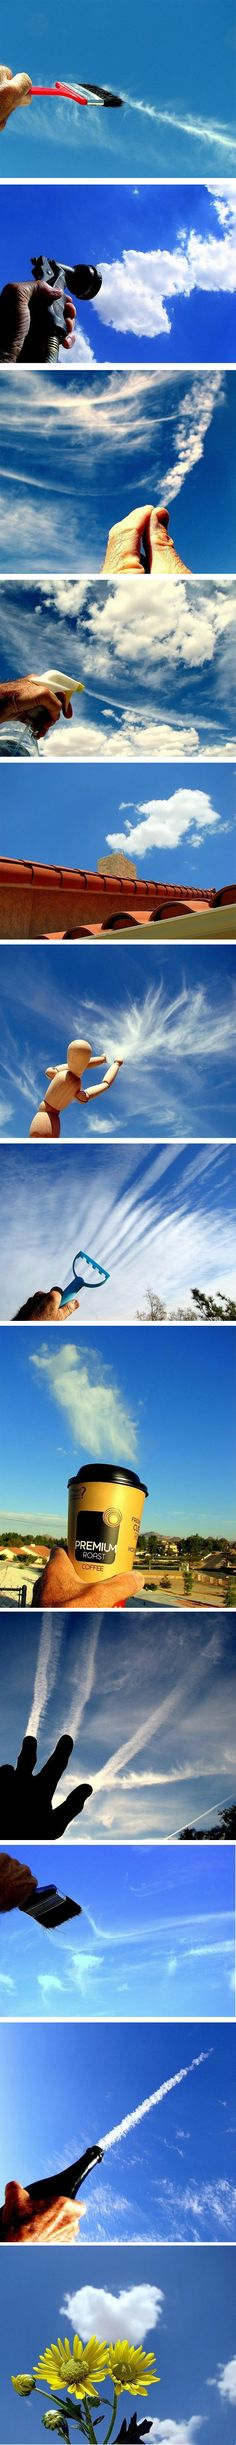 Forced perspective shots - Playing With Clouds Forced Perspective Photography, Perspective Photos, Experimental Photography, Creative Photography, Amazing Photography, Photography Tips, Illusion Photography, Artistic Photography, Digital Photography